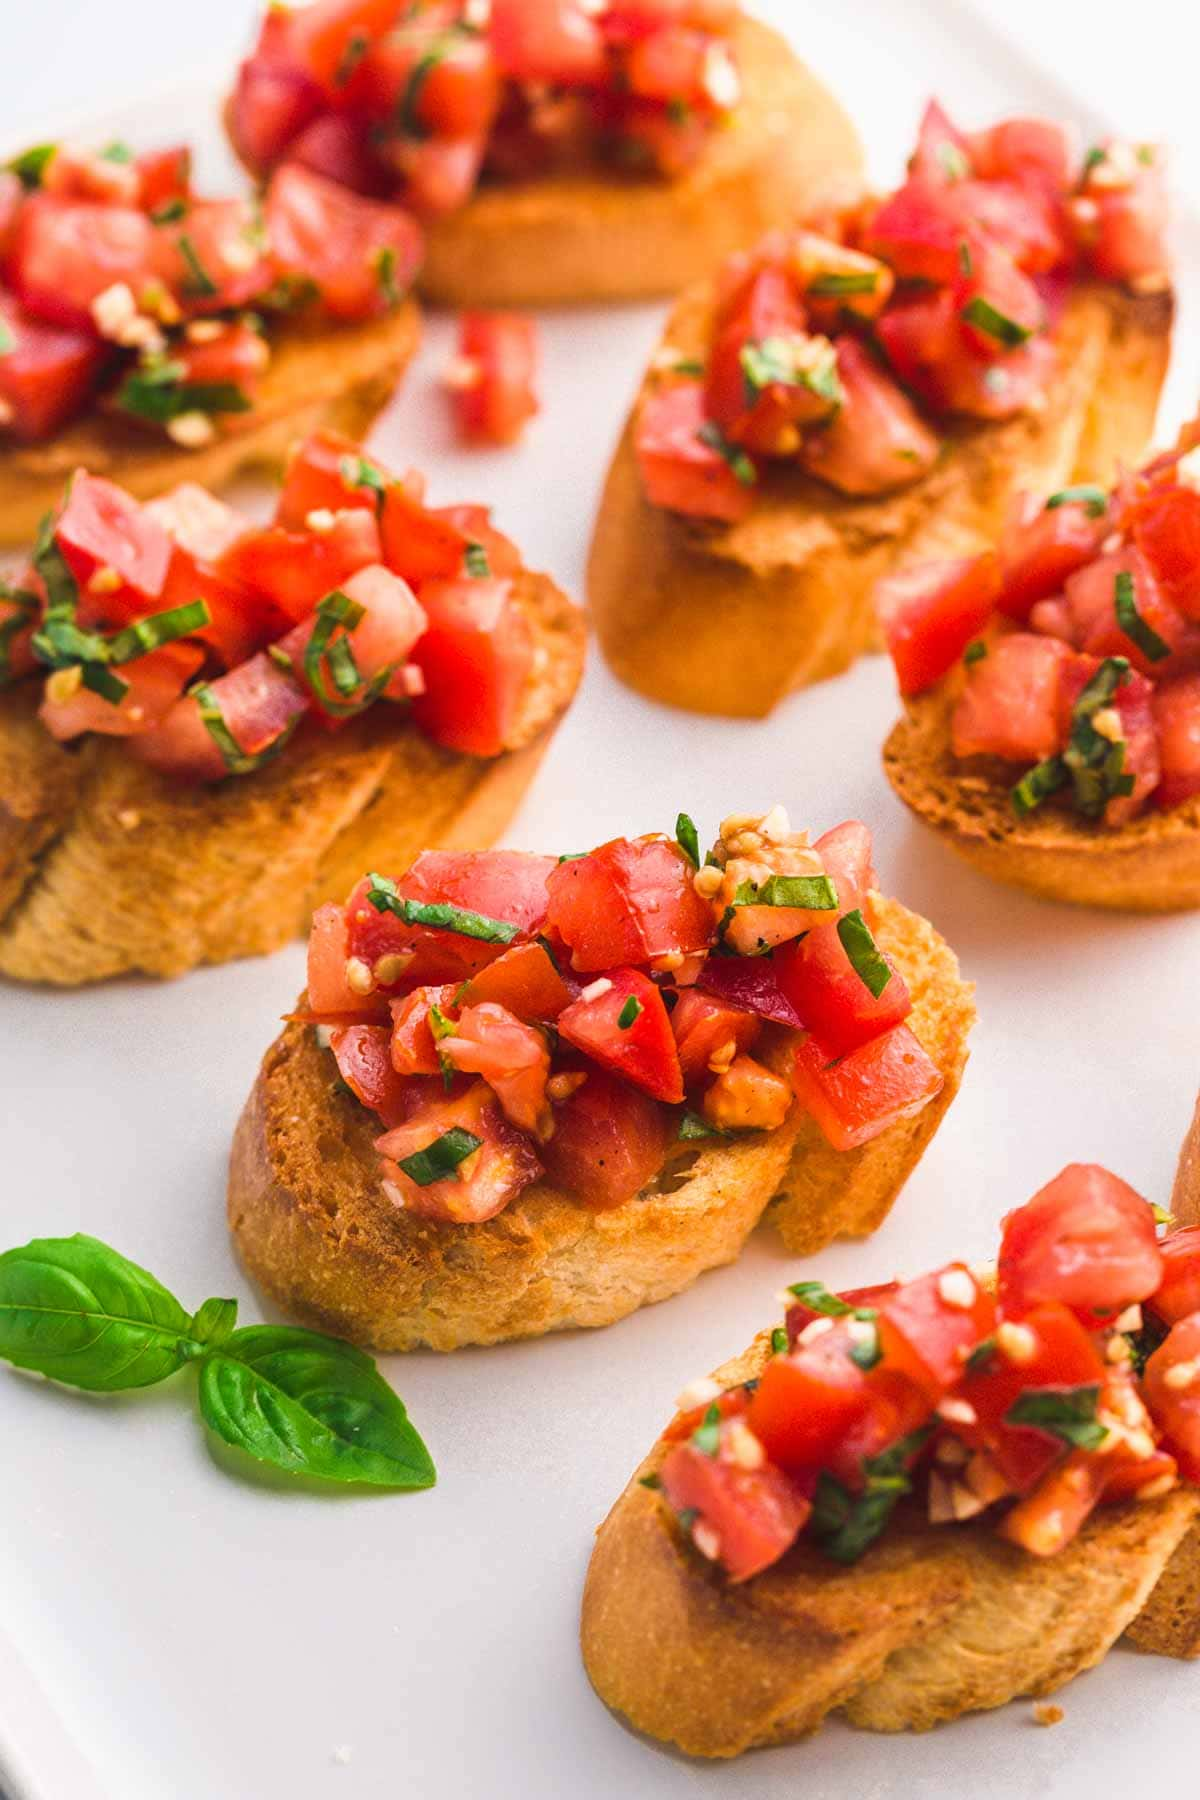 Tomato Bruschettas with fresh basil leaves